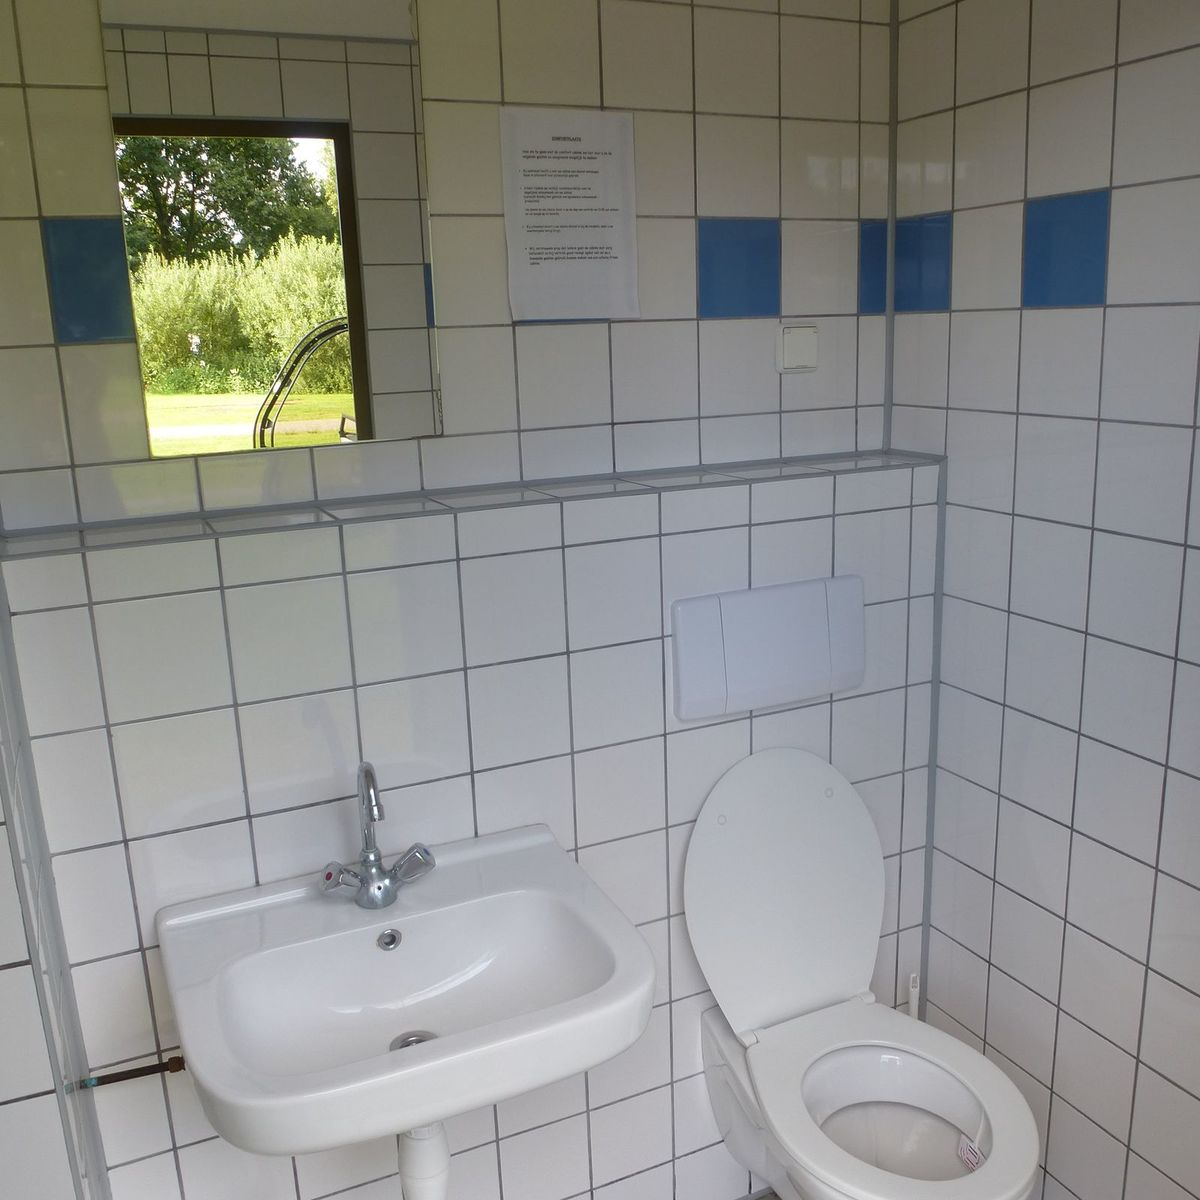 Pitch with private Toilet and shower